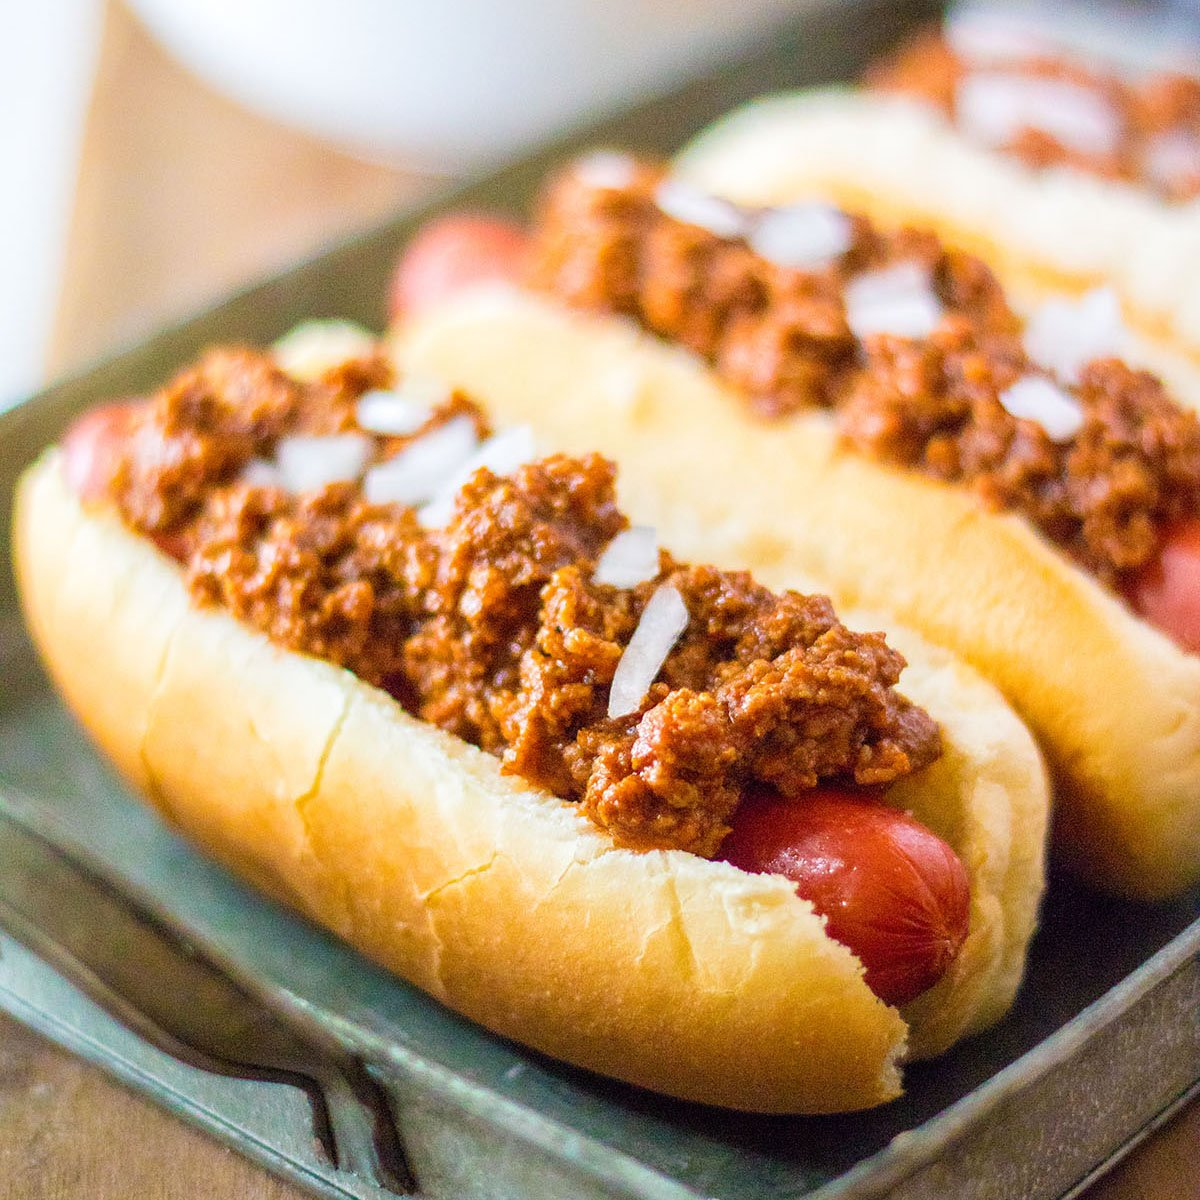 platter of hot dogs topped with chili and onions